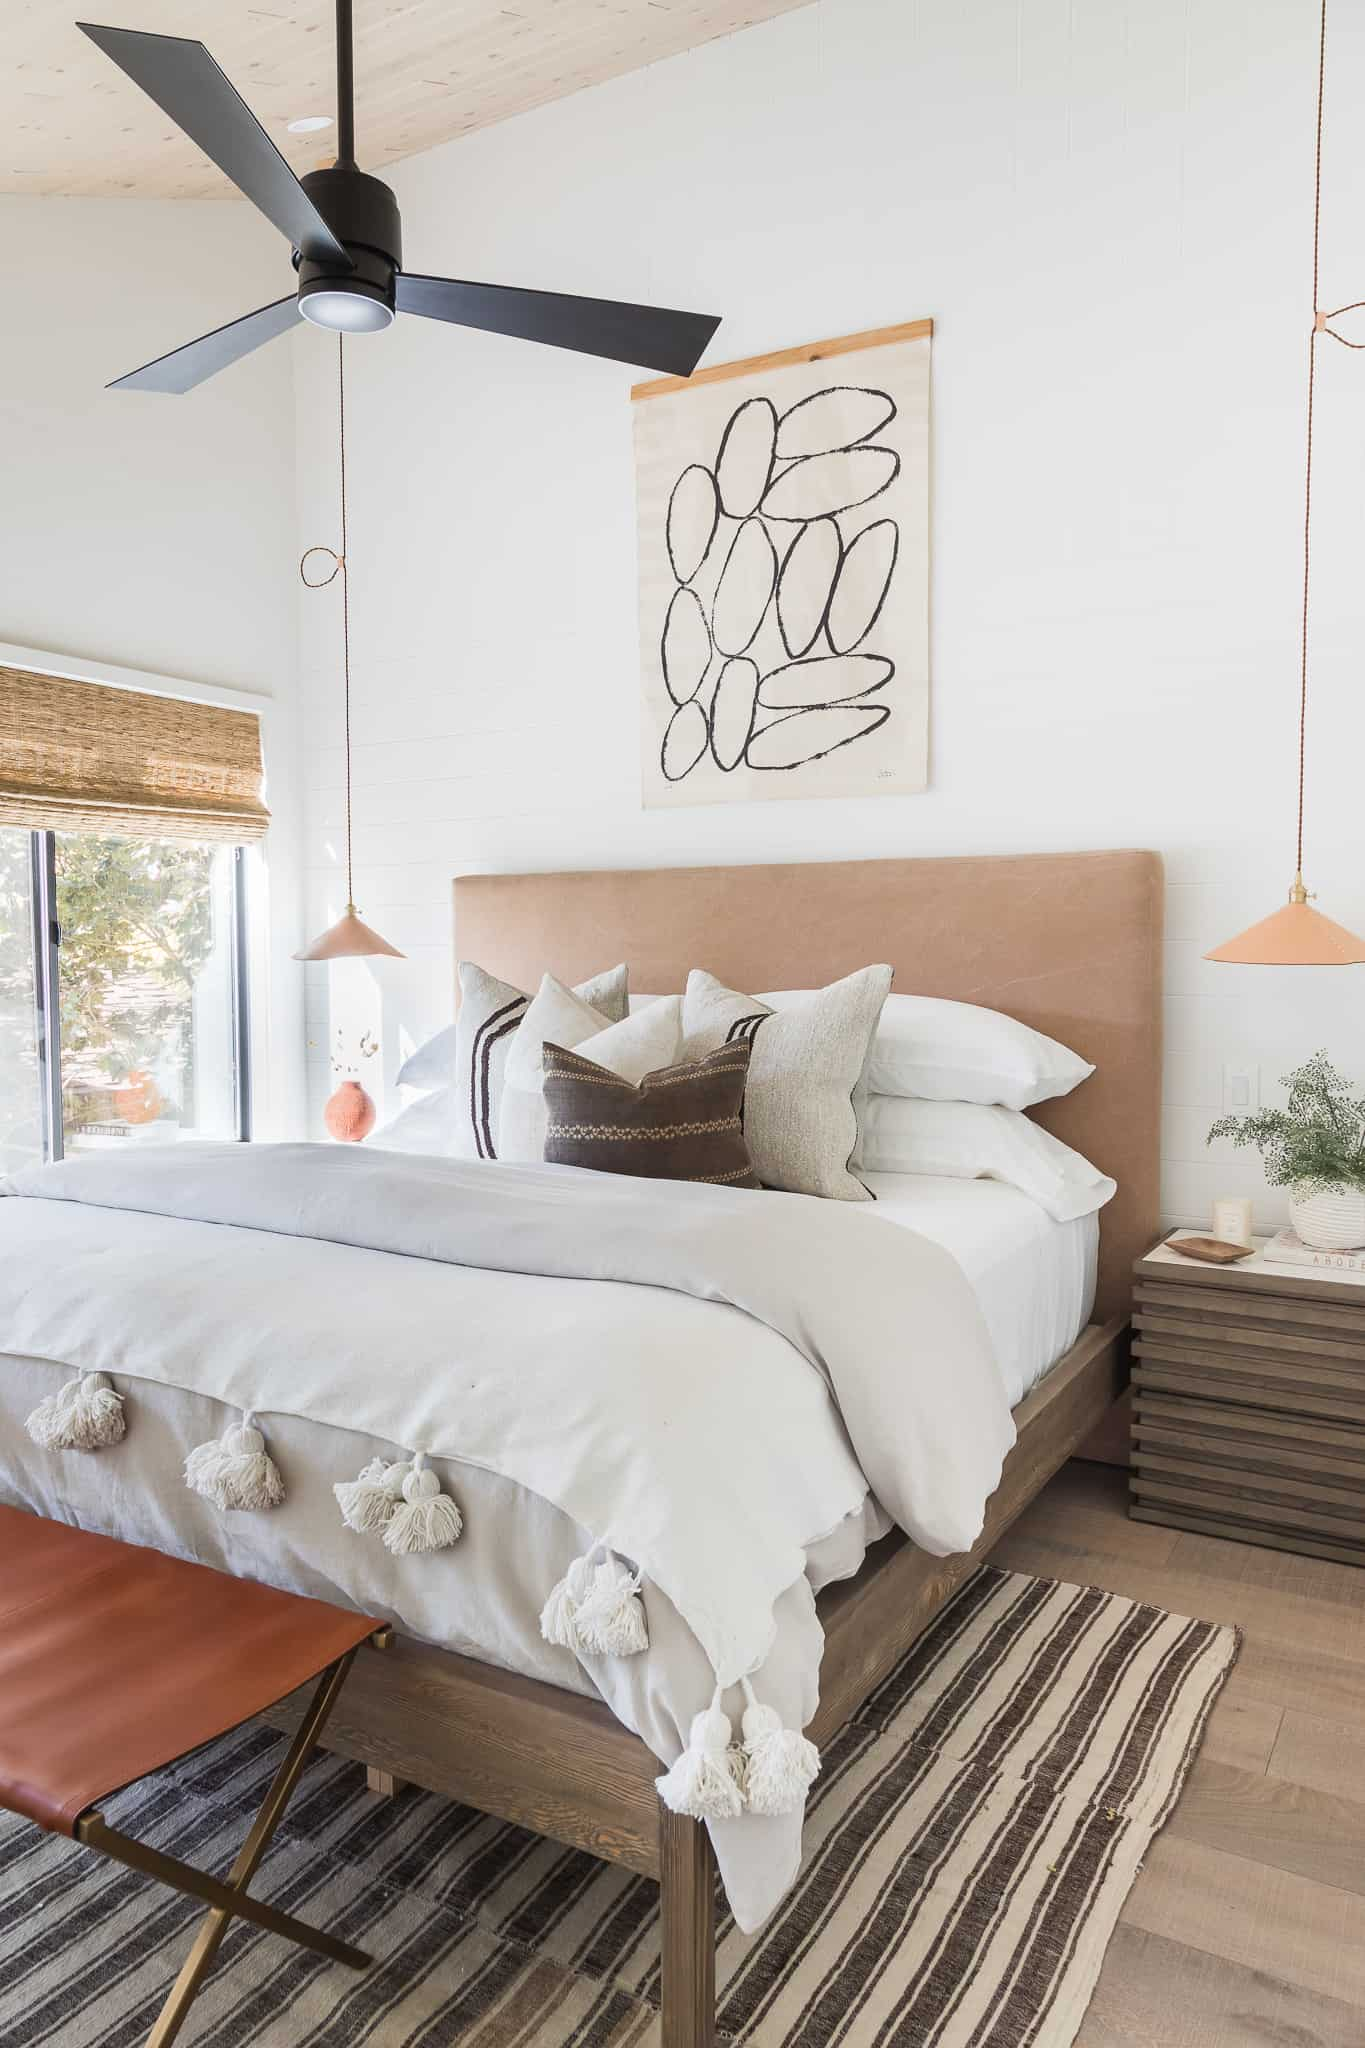 How To Properly Make A Bed - Lake Arrowhead Project Image - Mindy Gayer Design Co.